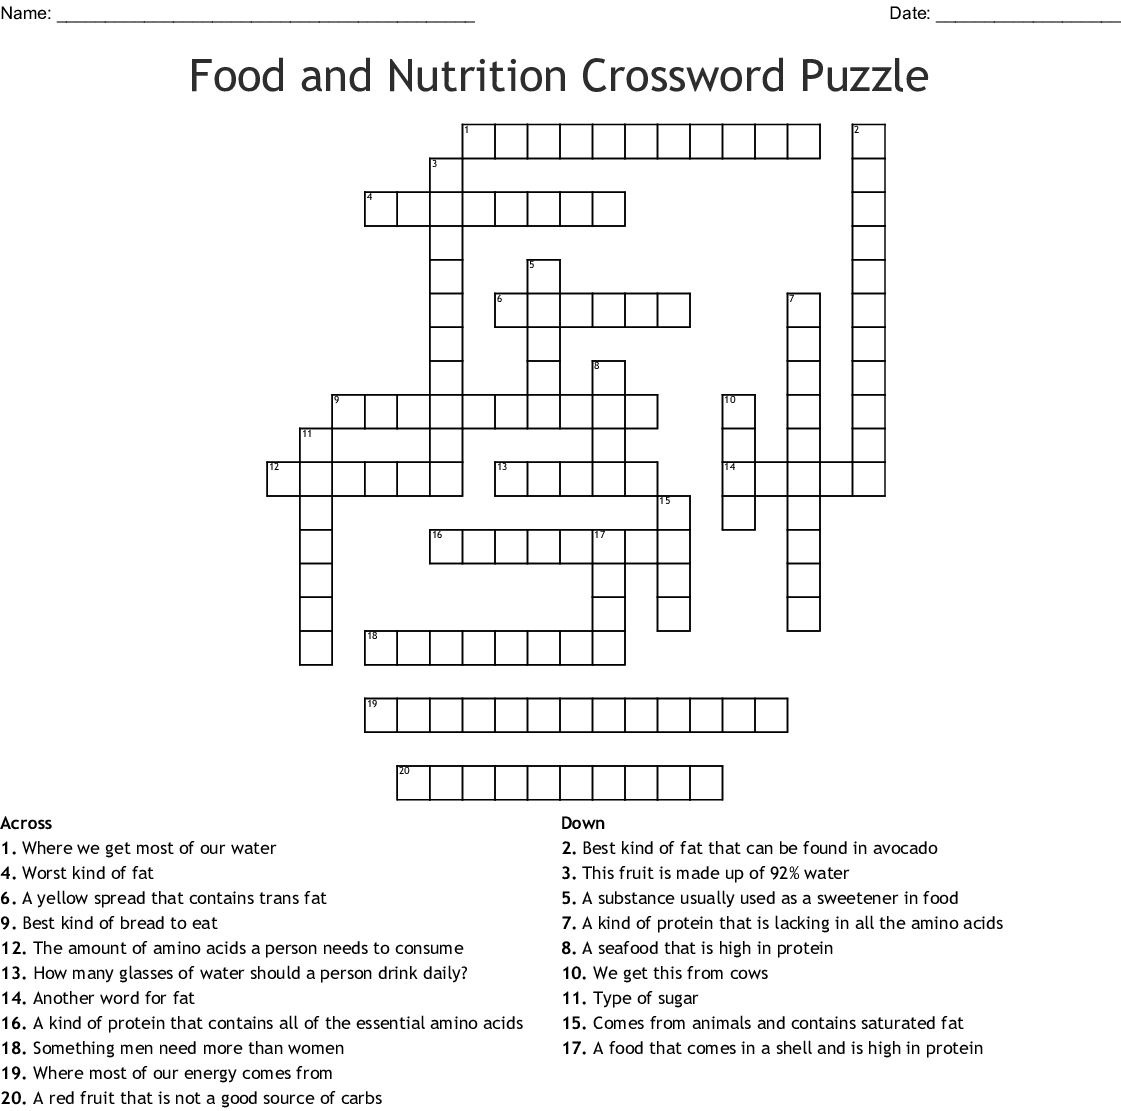 go on a diet crossword clue